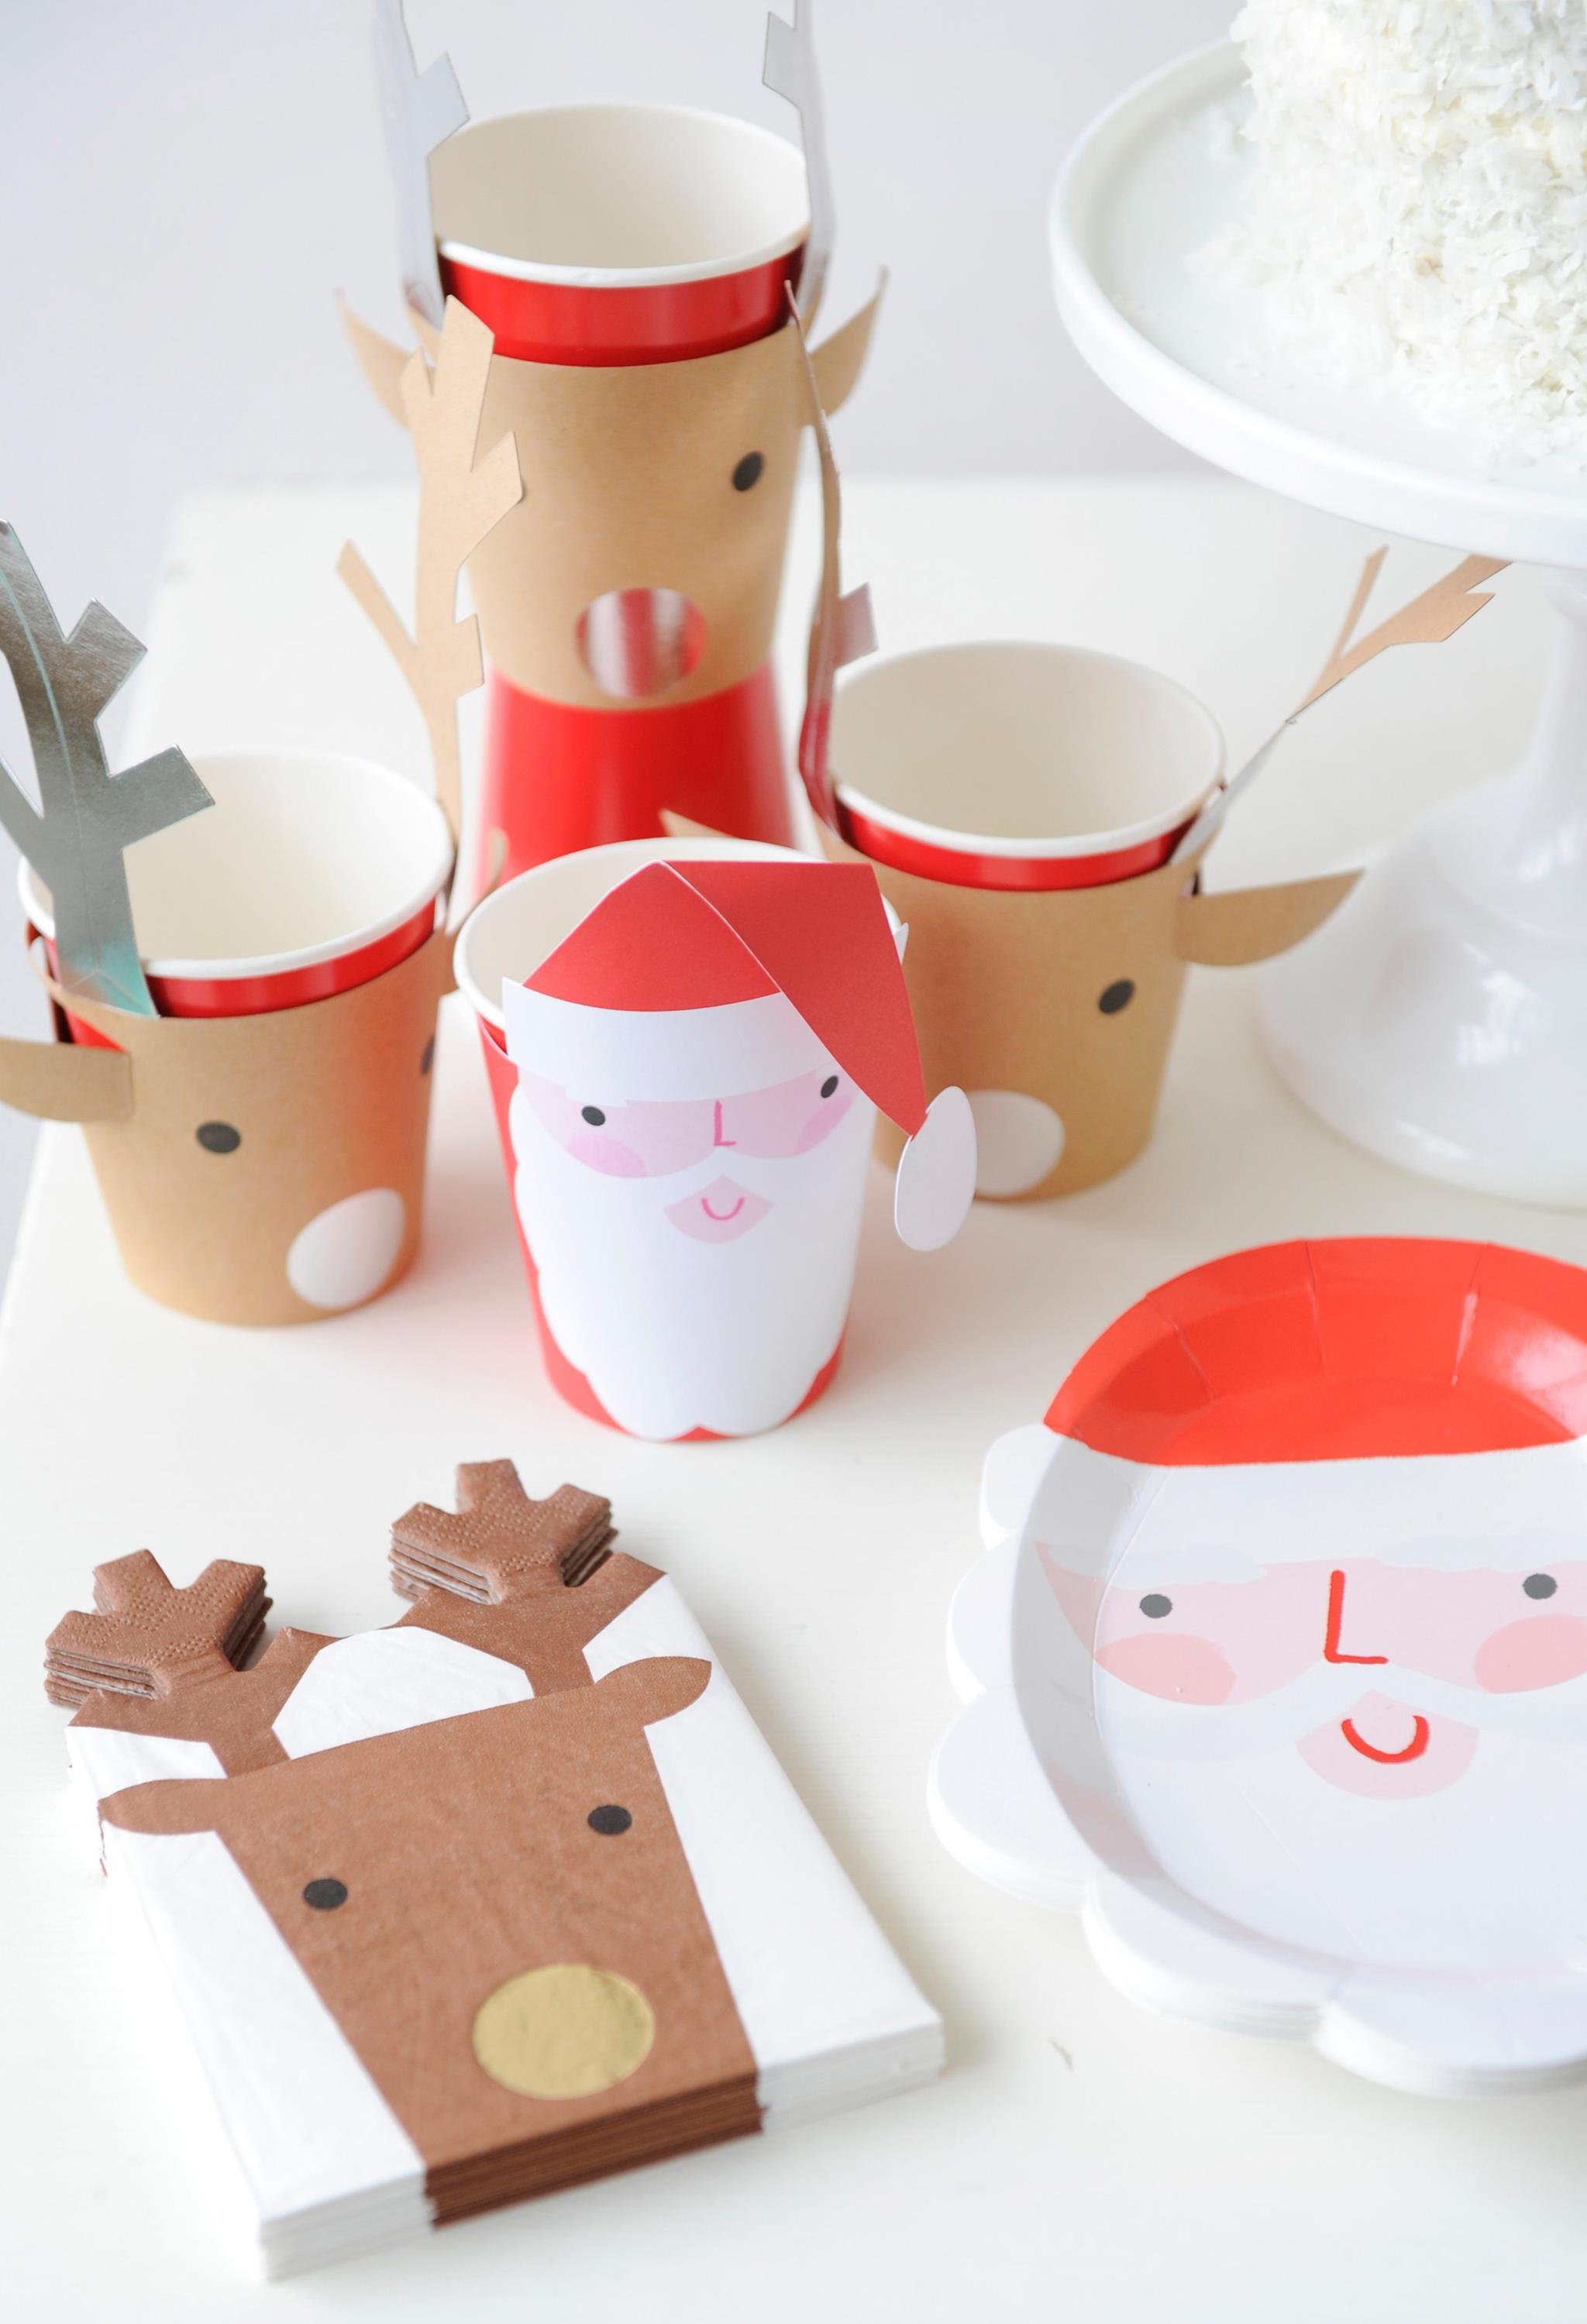 Santa and Reindeer Paper Plates, Cups and Napkins